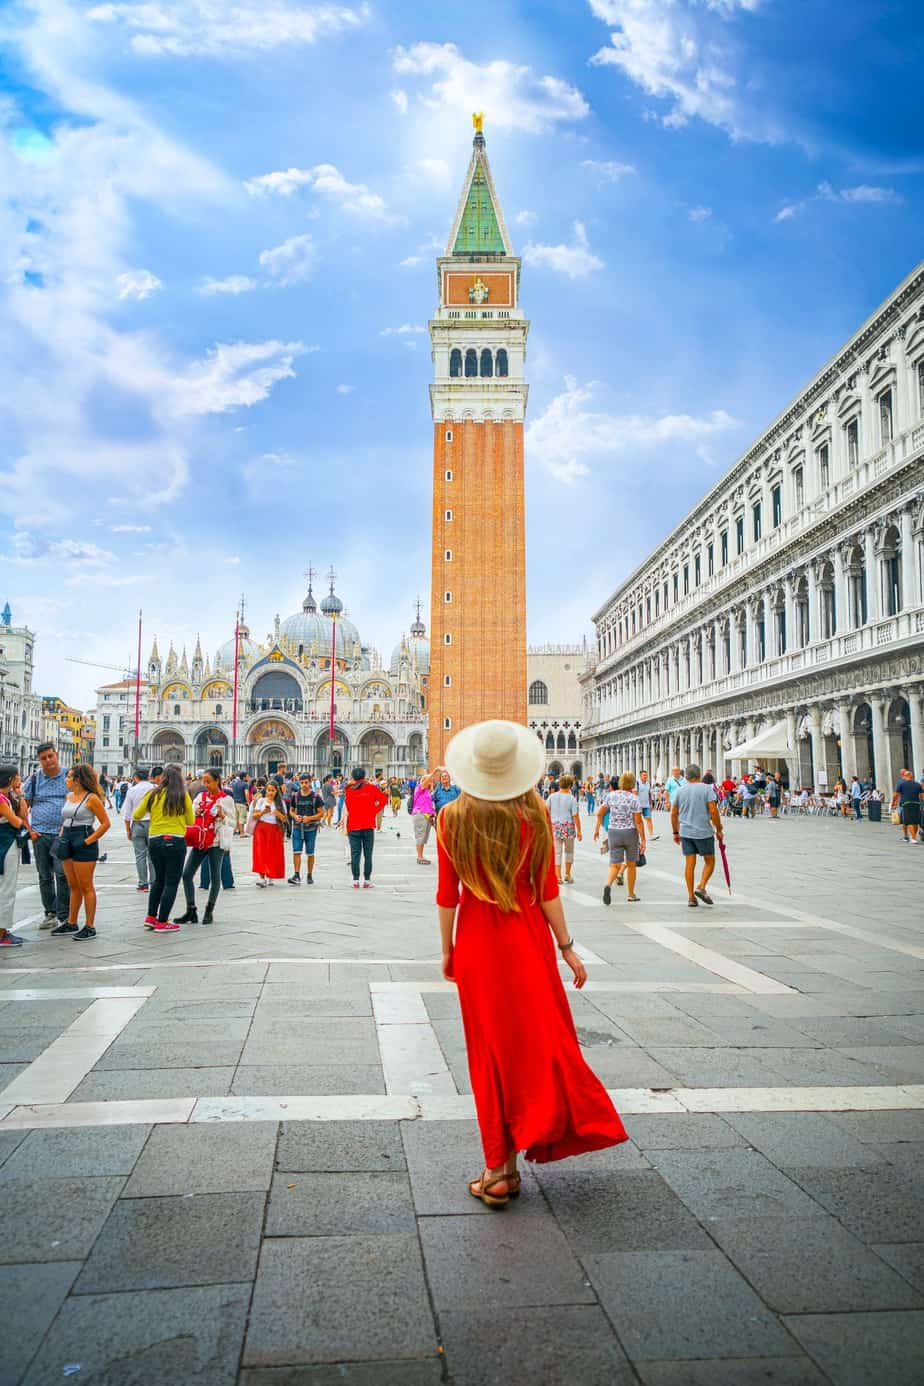 Instagram Photos in Saint Mark's Square In Venice Italy | best Instagrammable locations in Venice | Venice photo spots | pretty places in Venice | visiting Saint Mark's Square In Venice Italy